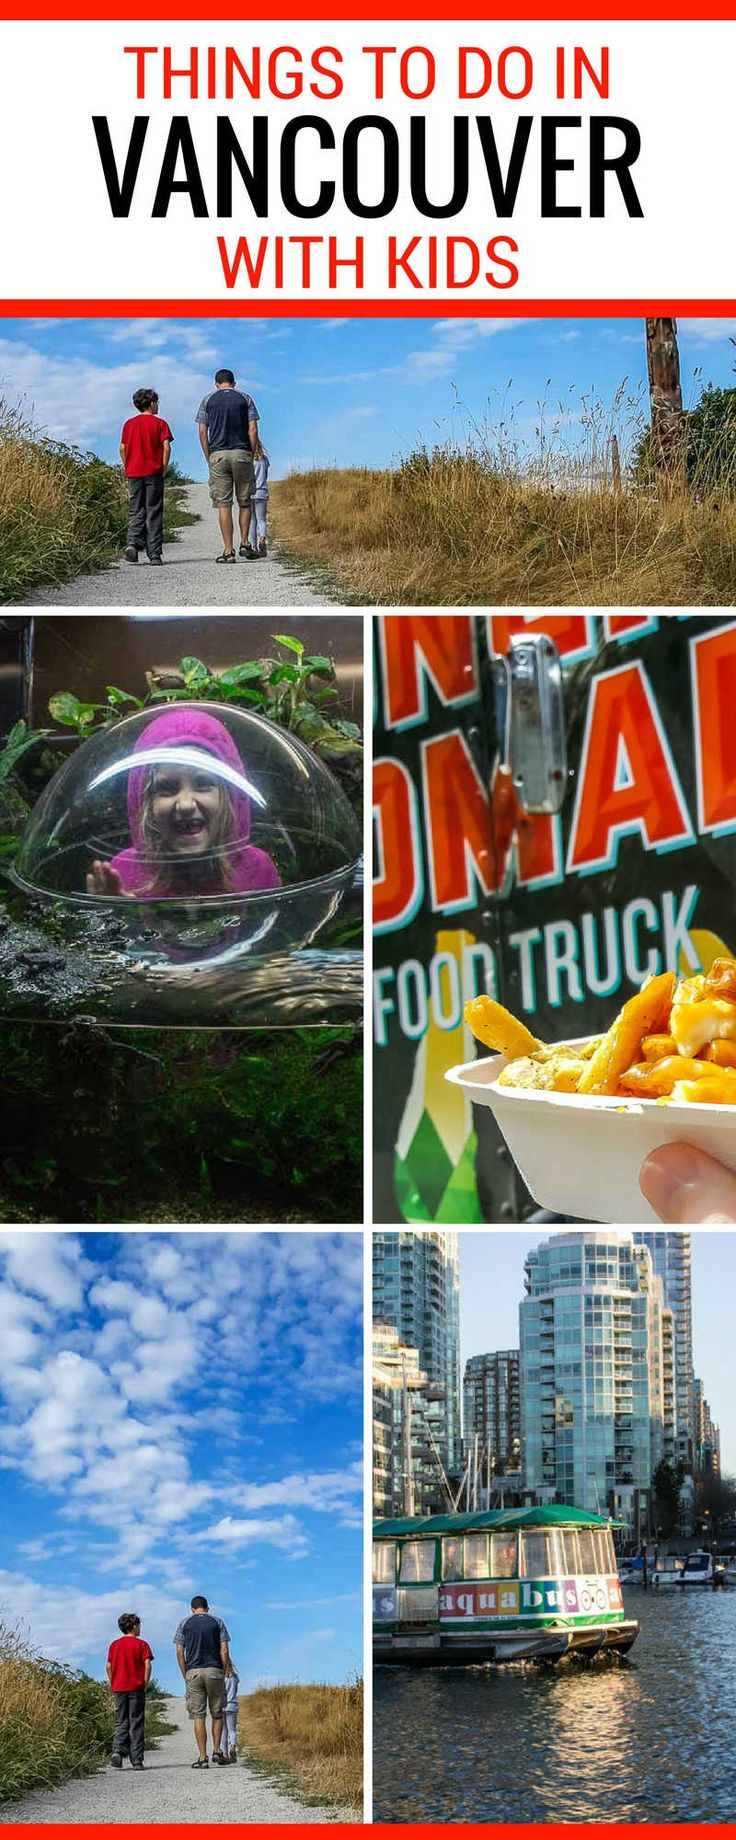 Things to do in Vancouver with Kids There are hundreds of things to do in Vancouver with the kids, from indoor fun like the Vancouver Aquarium, to outdoor adventure by the ocean, to thrill seeking fun on the Lynn Canyon or Capilano suspension bridge. | Vancouver Travel | Vancouver BC Canada | Vancouver with kids | Vancouver with Family #Vancouver #BC #travel